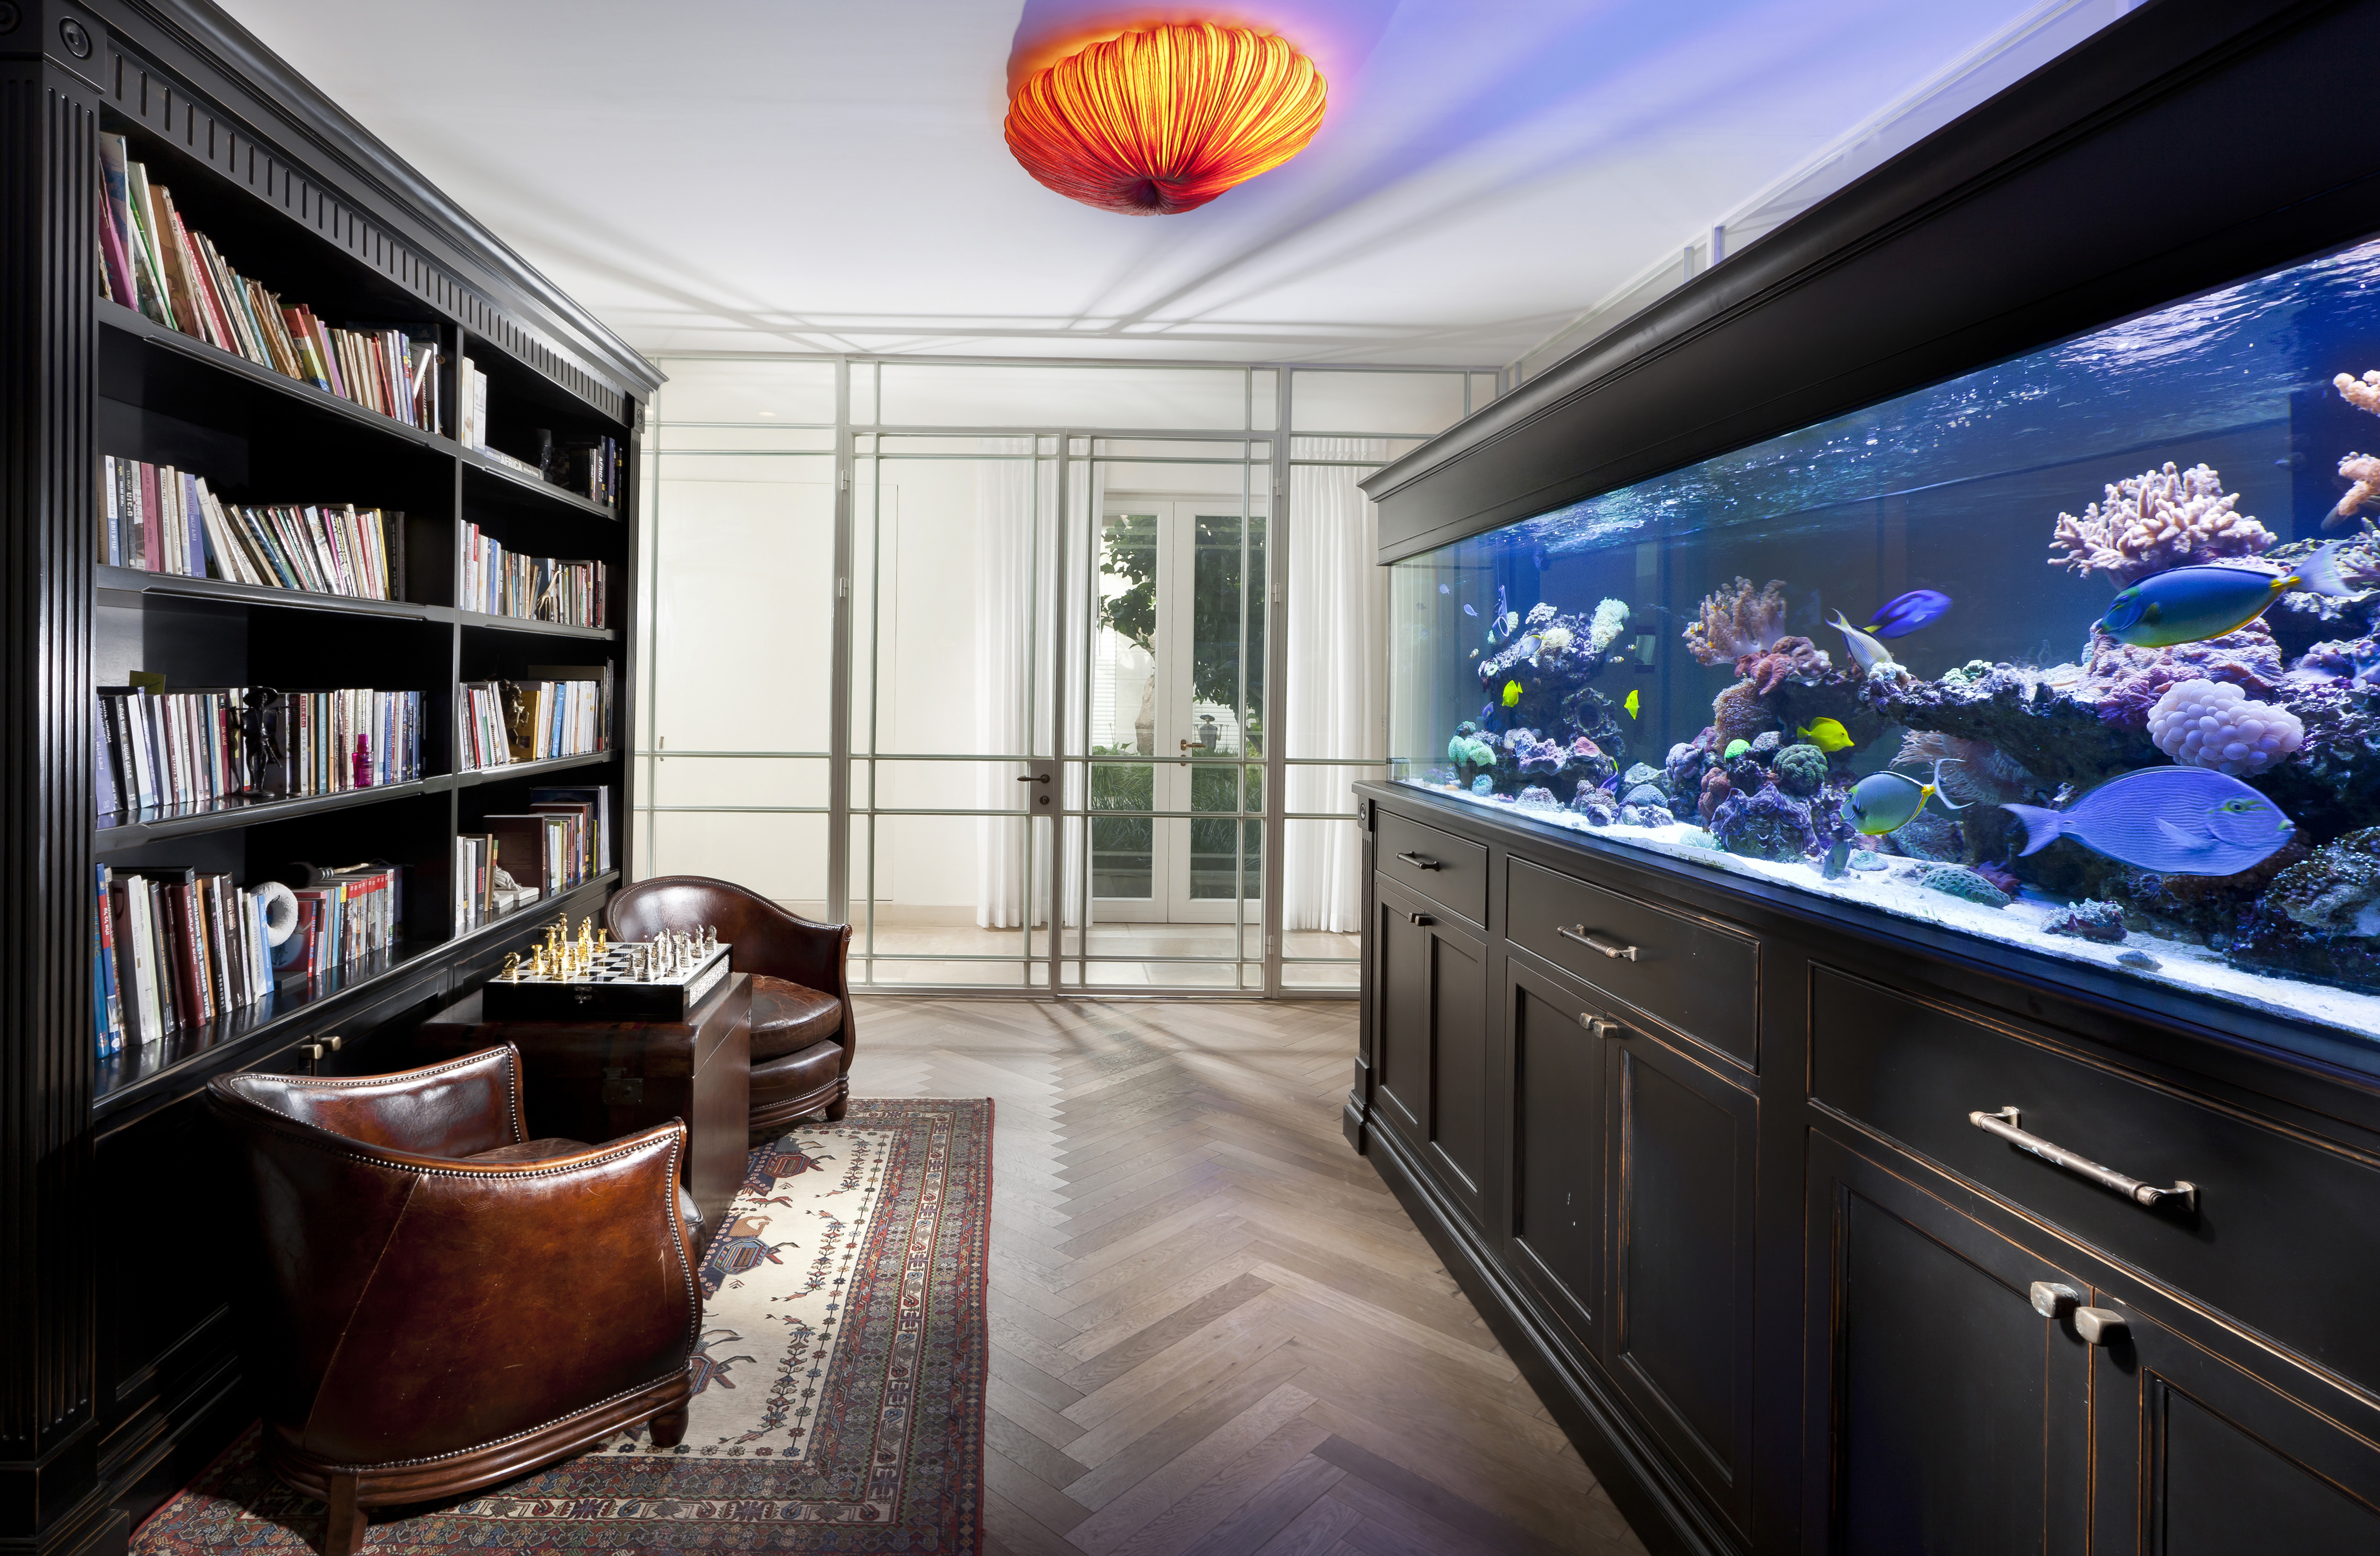 Room with large fish tank and bookcase, leather armchairs and chess set in country villa, Moshav Bnaya, Israel.